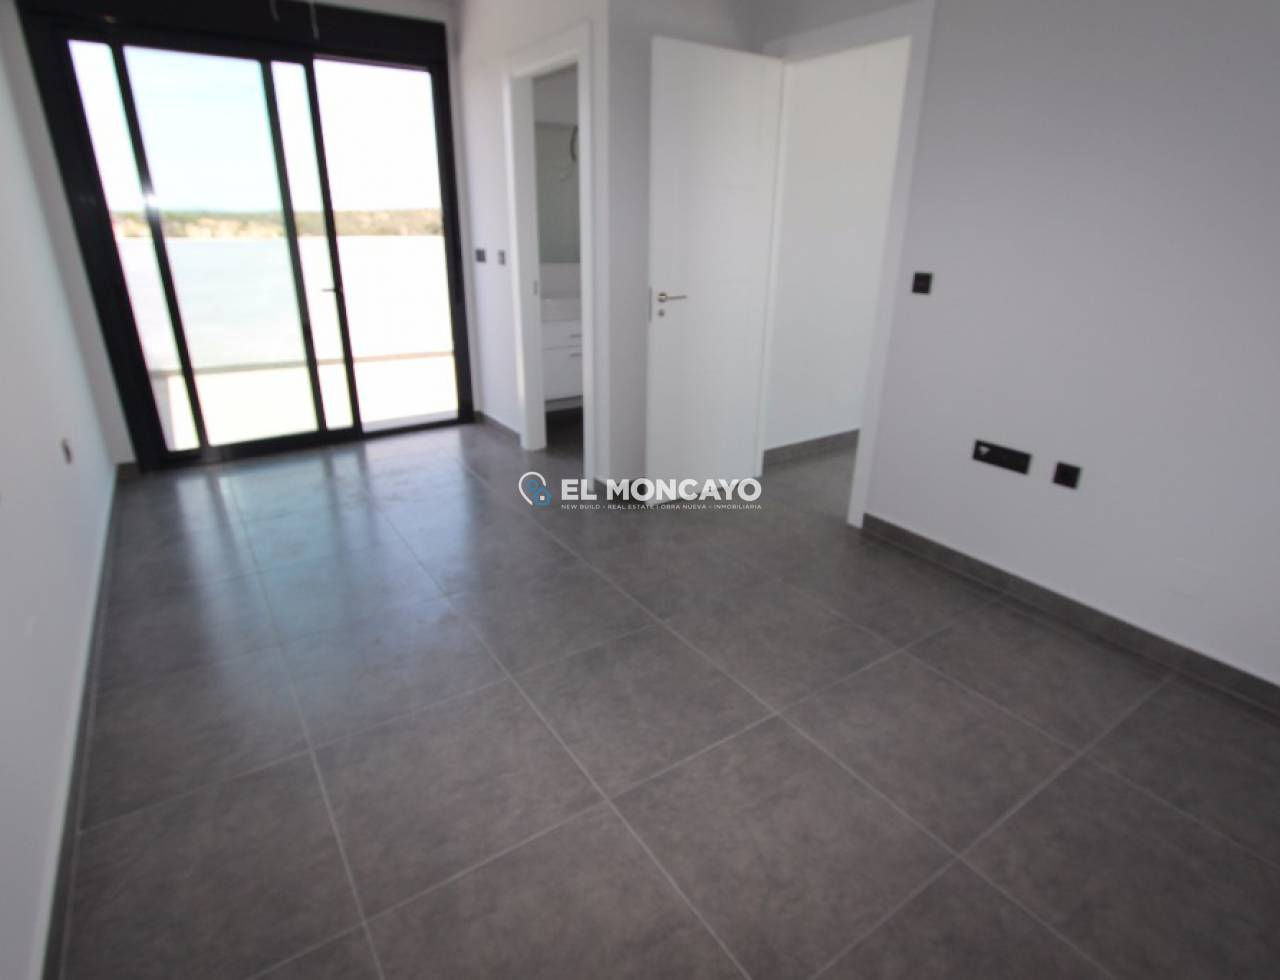 Penthouse duplex in Villamartín - Orihuela Costa (Costa Blanca South) 119 (7)